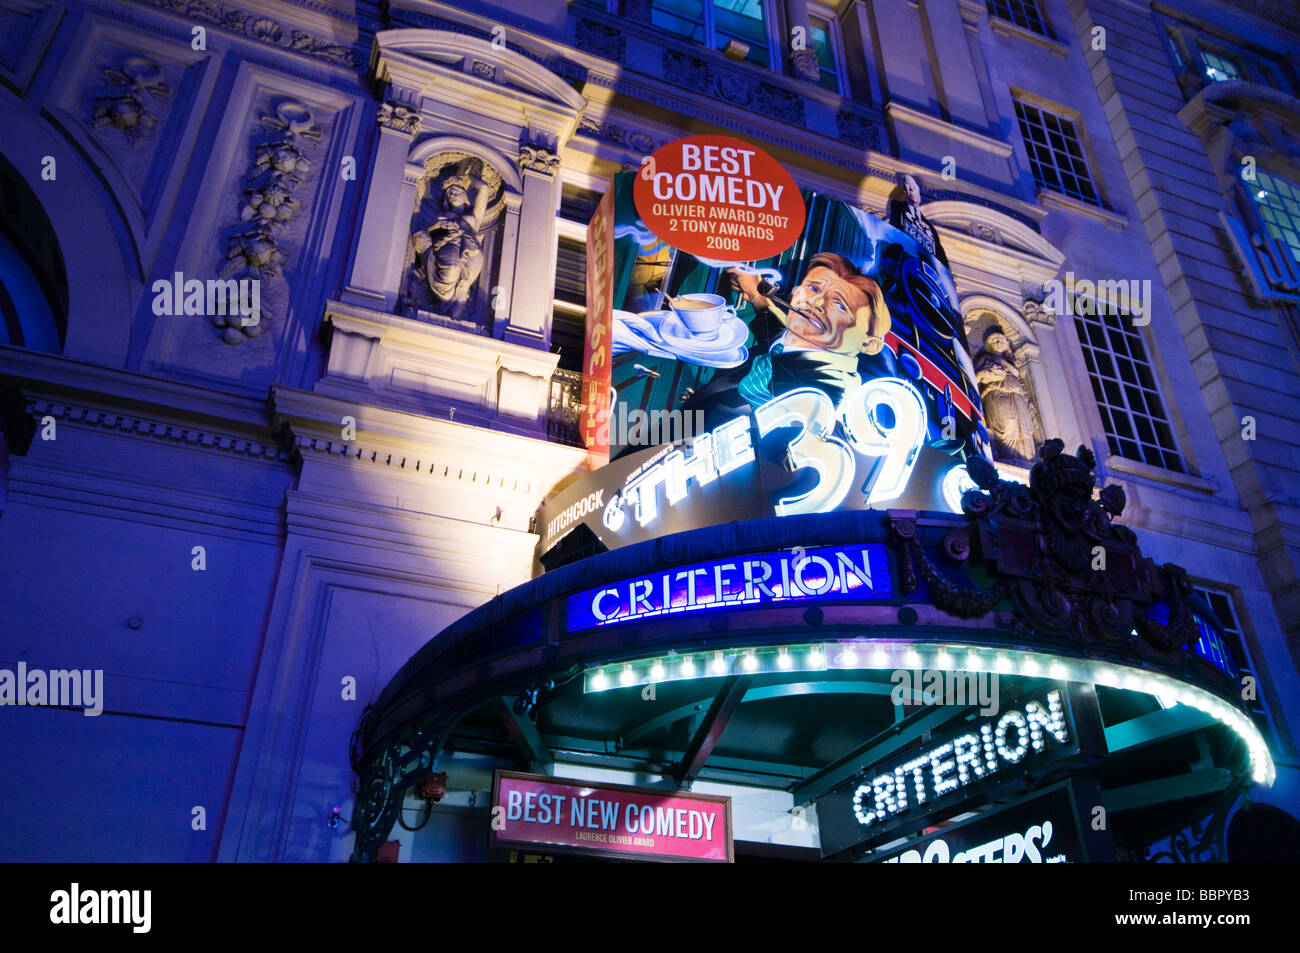 Criterion Theatre, West End, London, UK - Stock Image